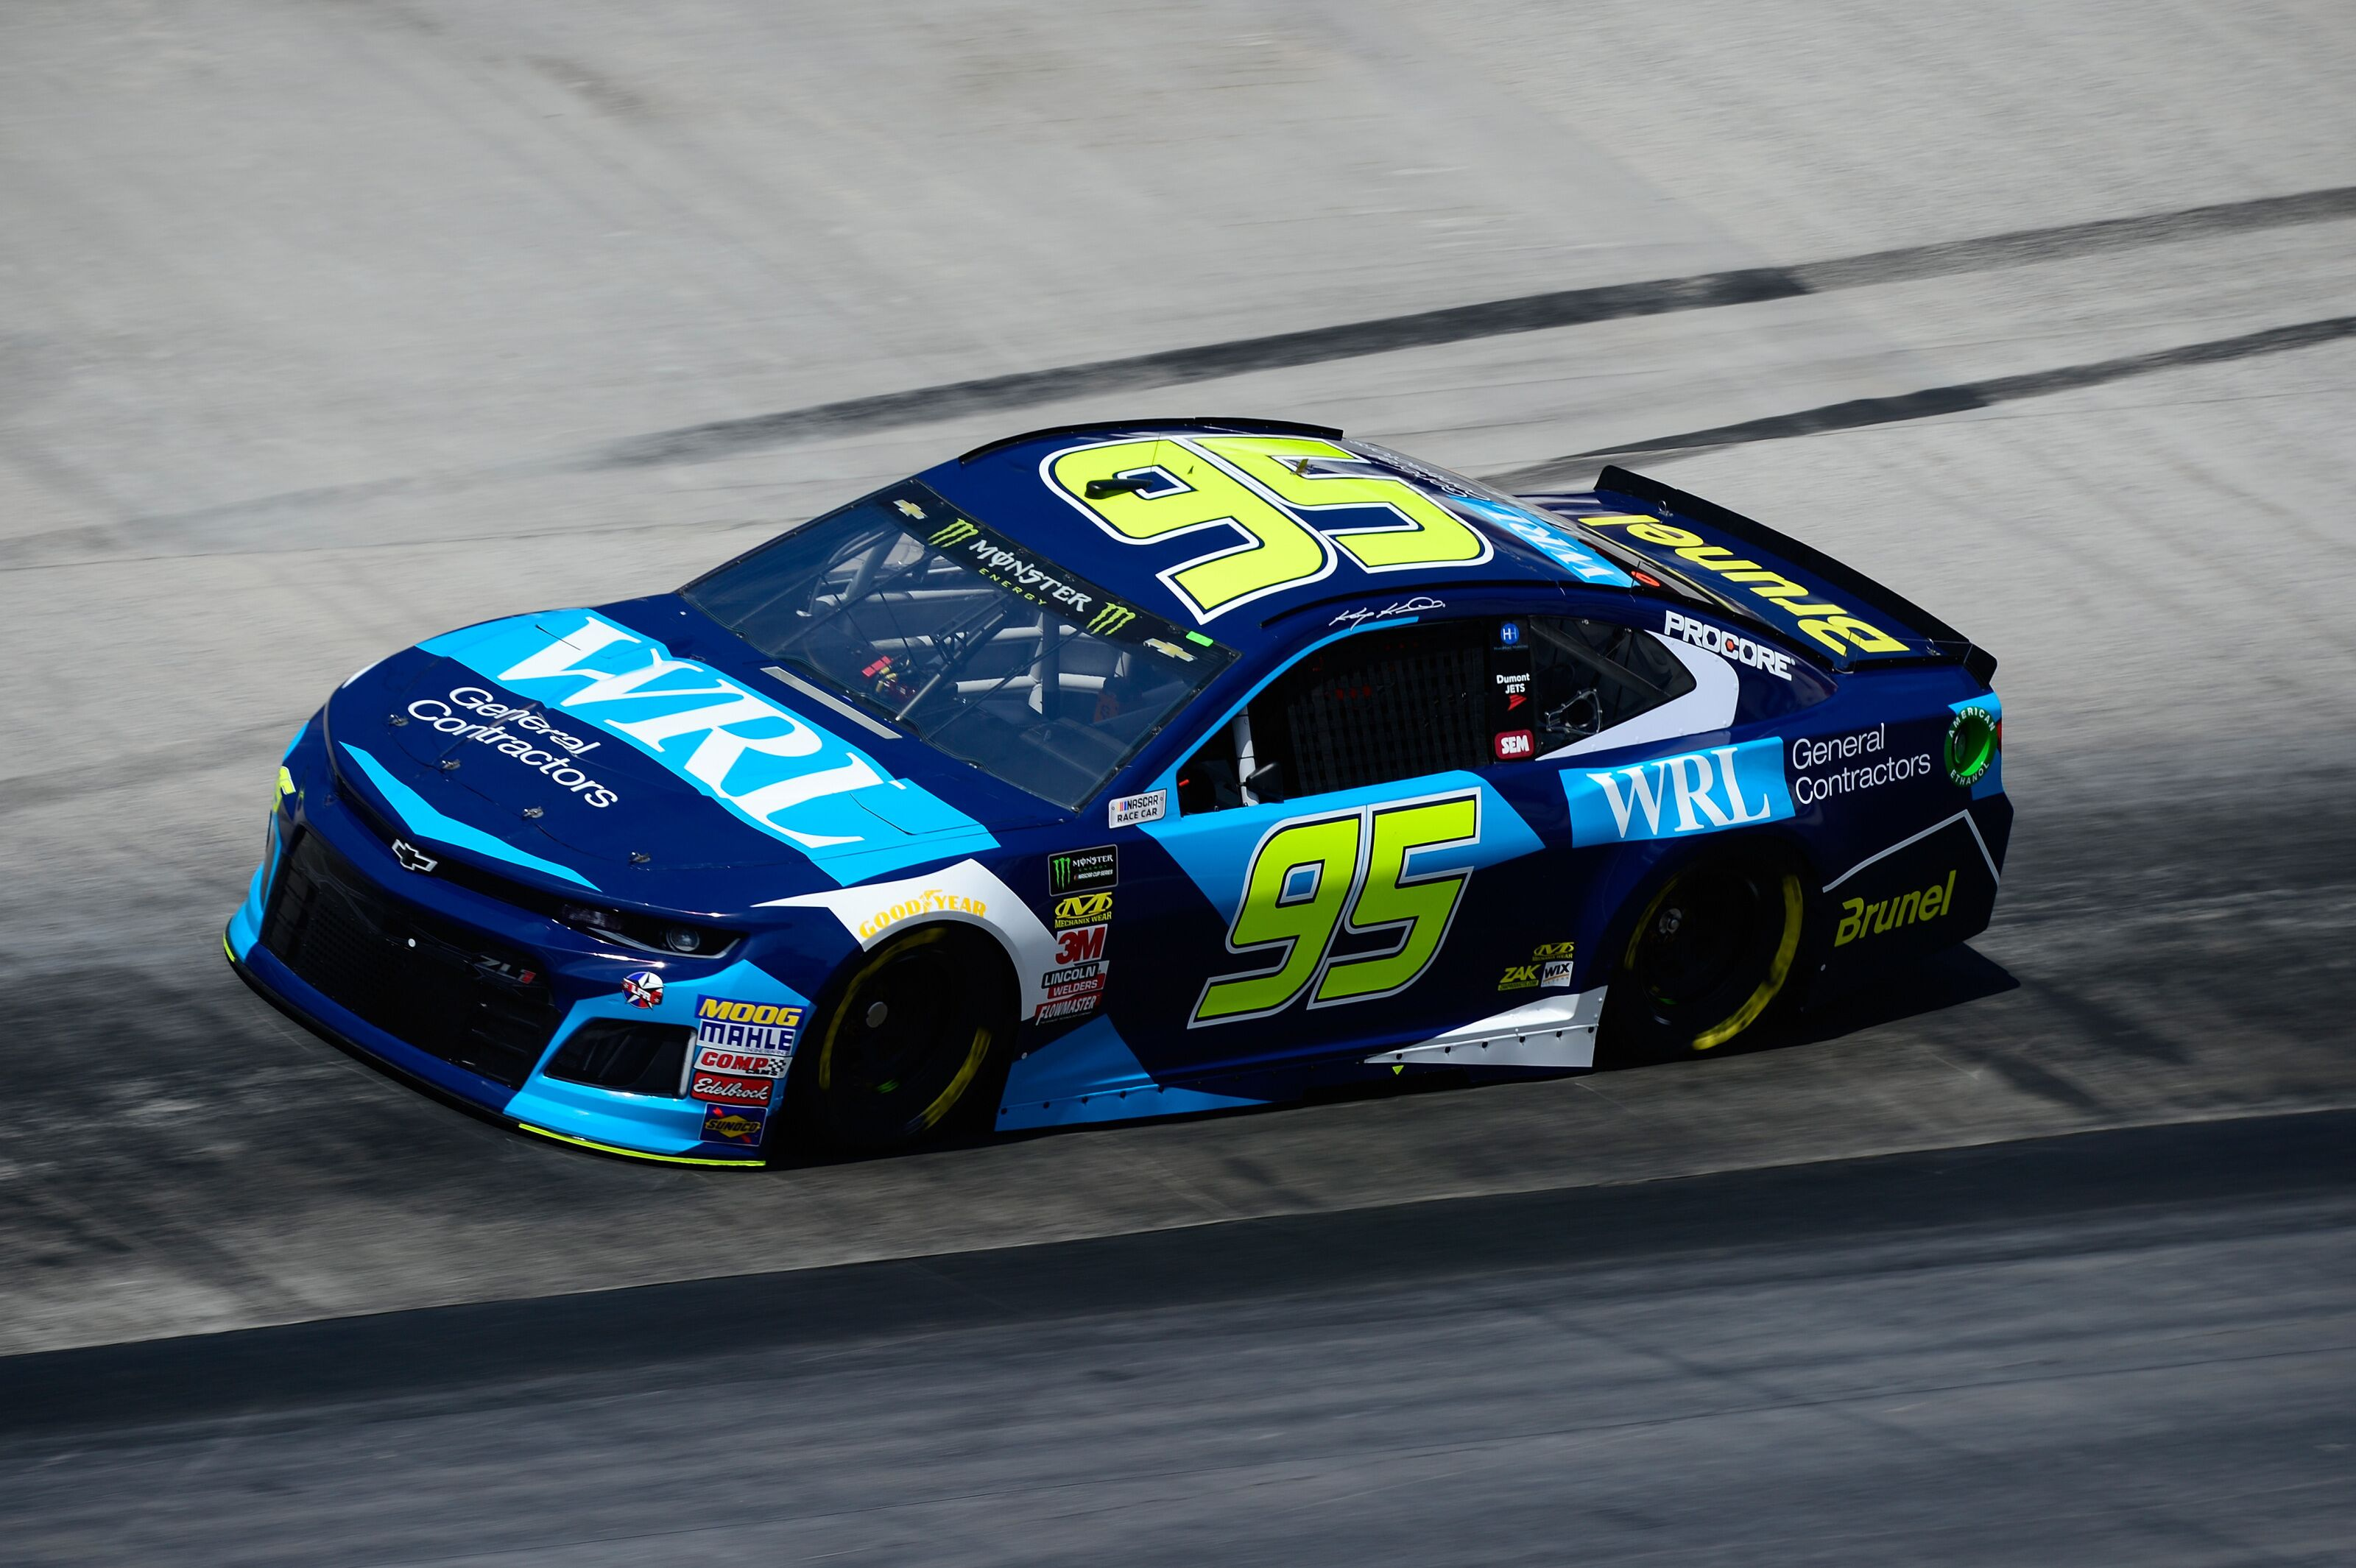 Nascar 5 Predictions For The 2018 Toyota Owners 400 At